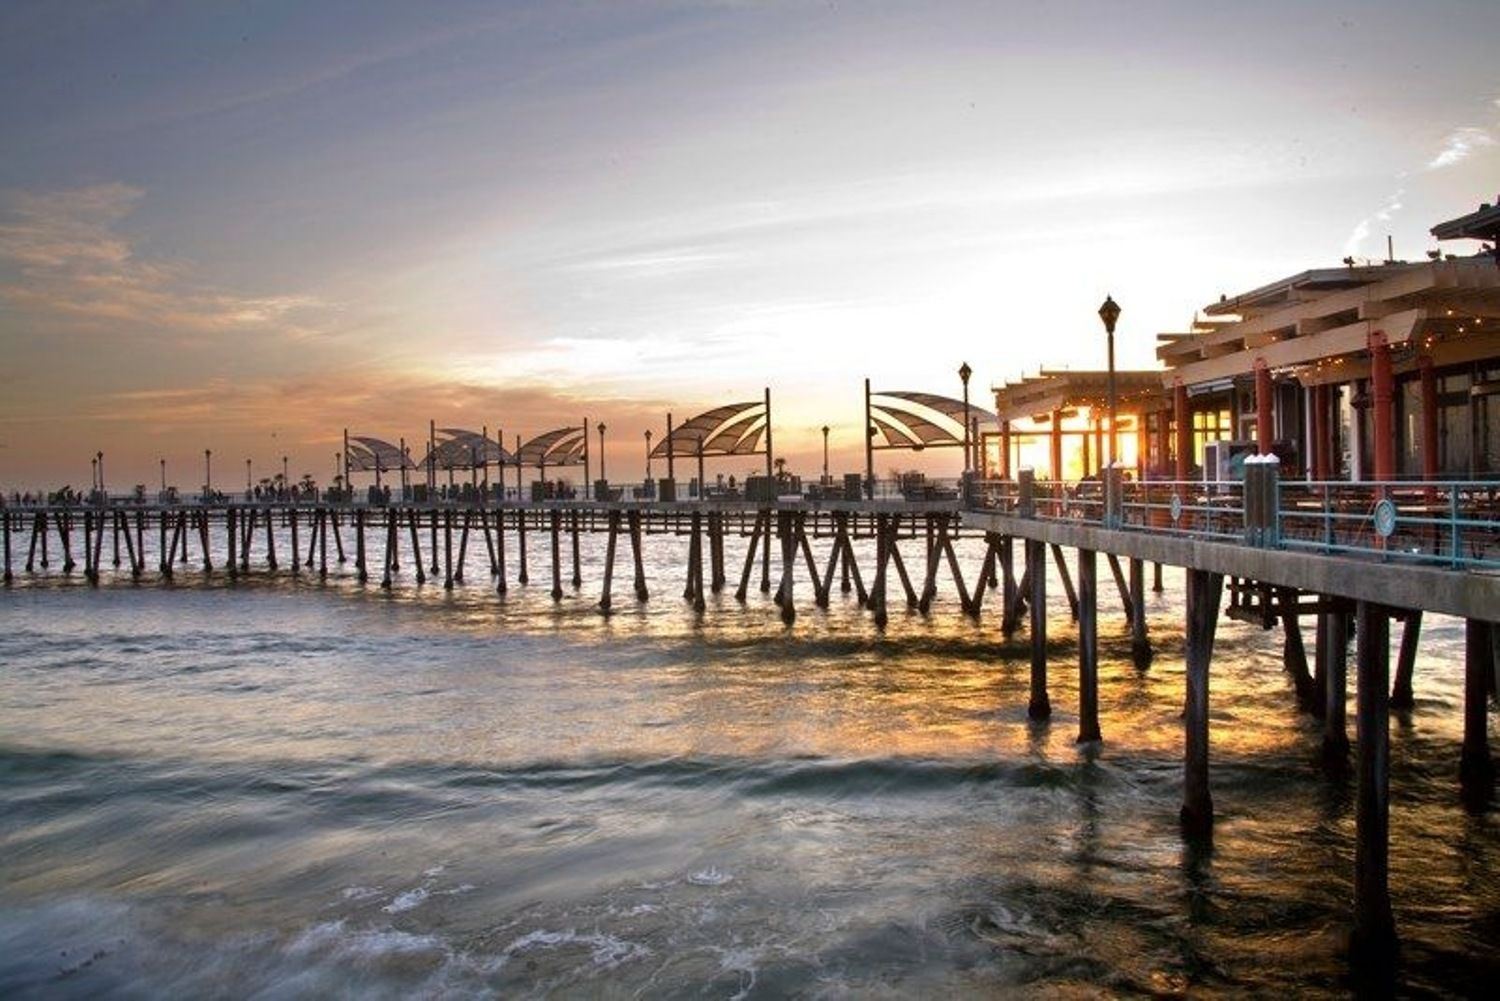 redondo beach Find redondo beach restaurants in the beach cities area and other cities such as torrance / carson, hawthorne / gardena, manhattan beach, and more make restaurant reservations and read.